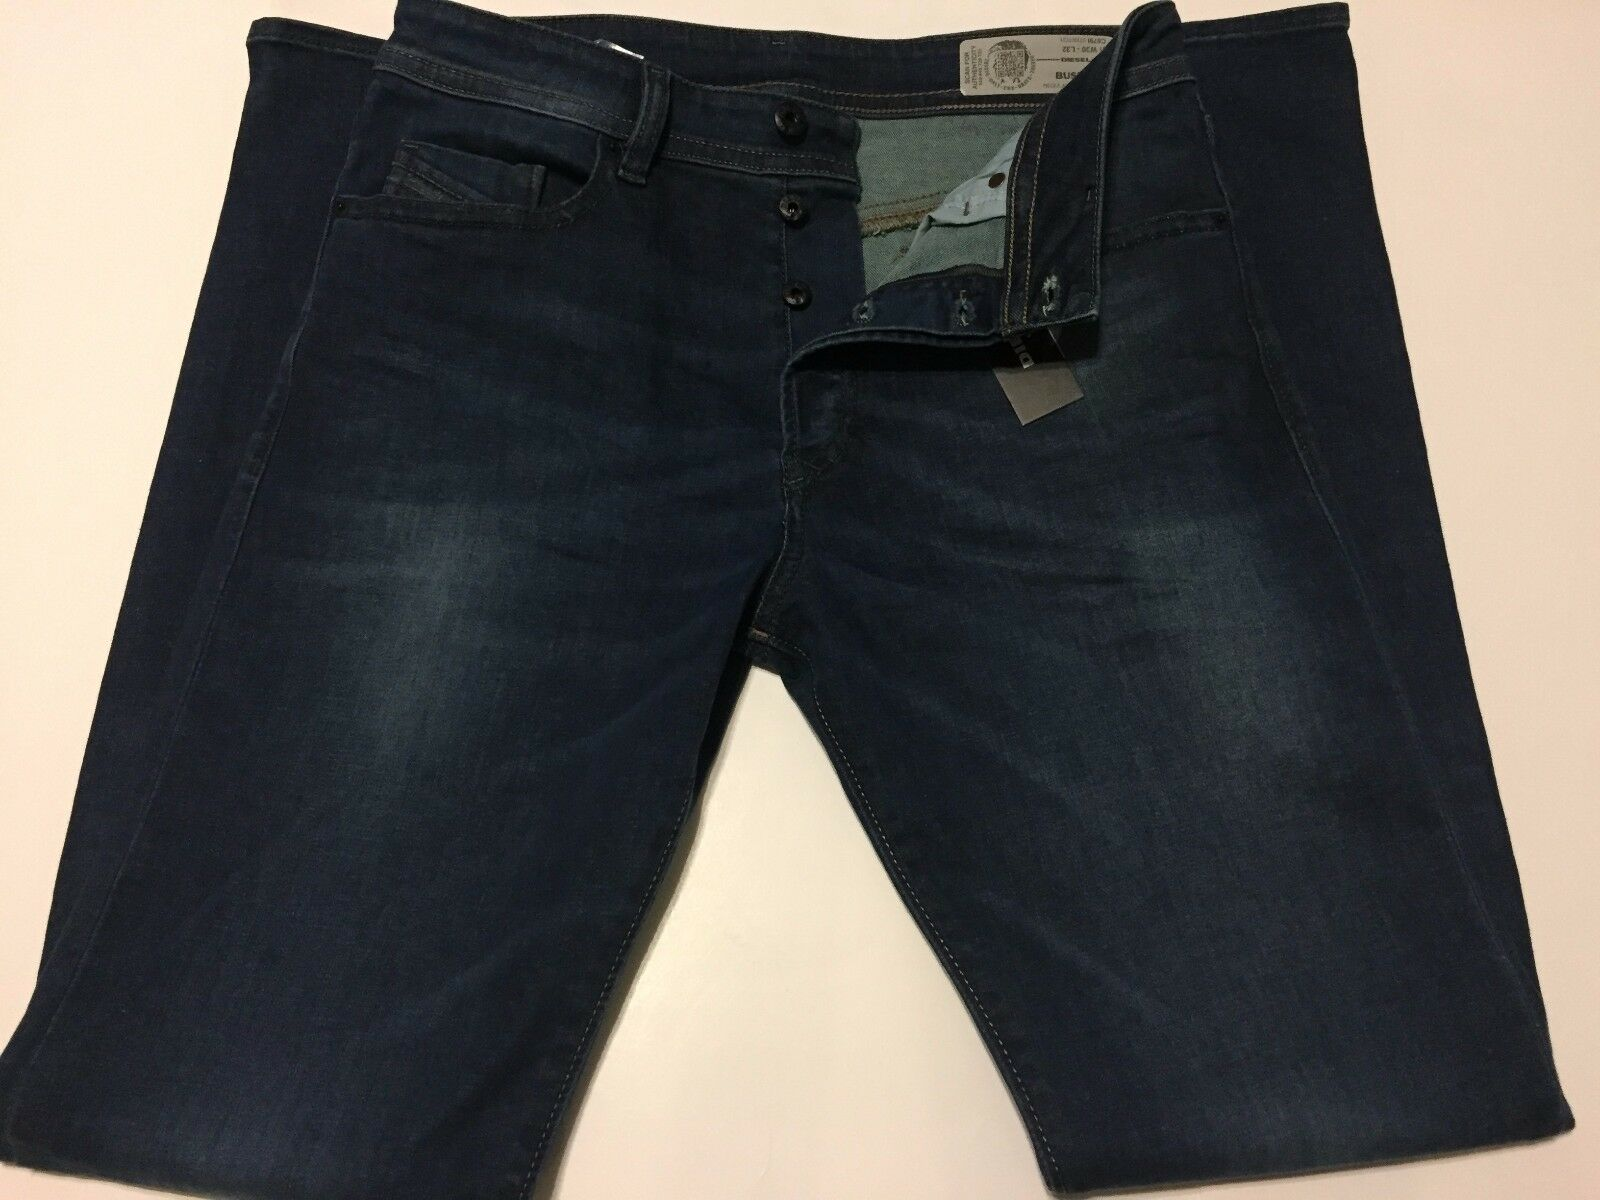 NWT Diesel Mens BUSTER SLIM TAPPERED Jeans size  30 x 32  Wash C6791_stretch